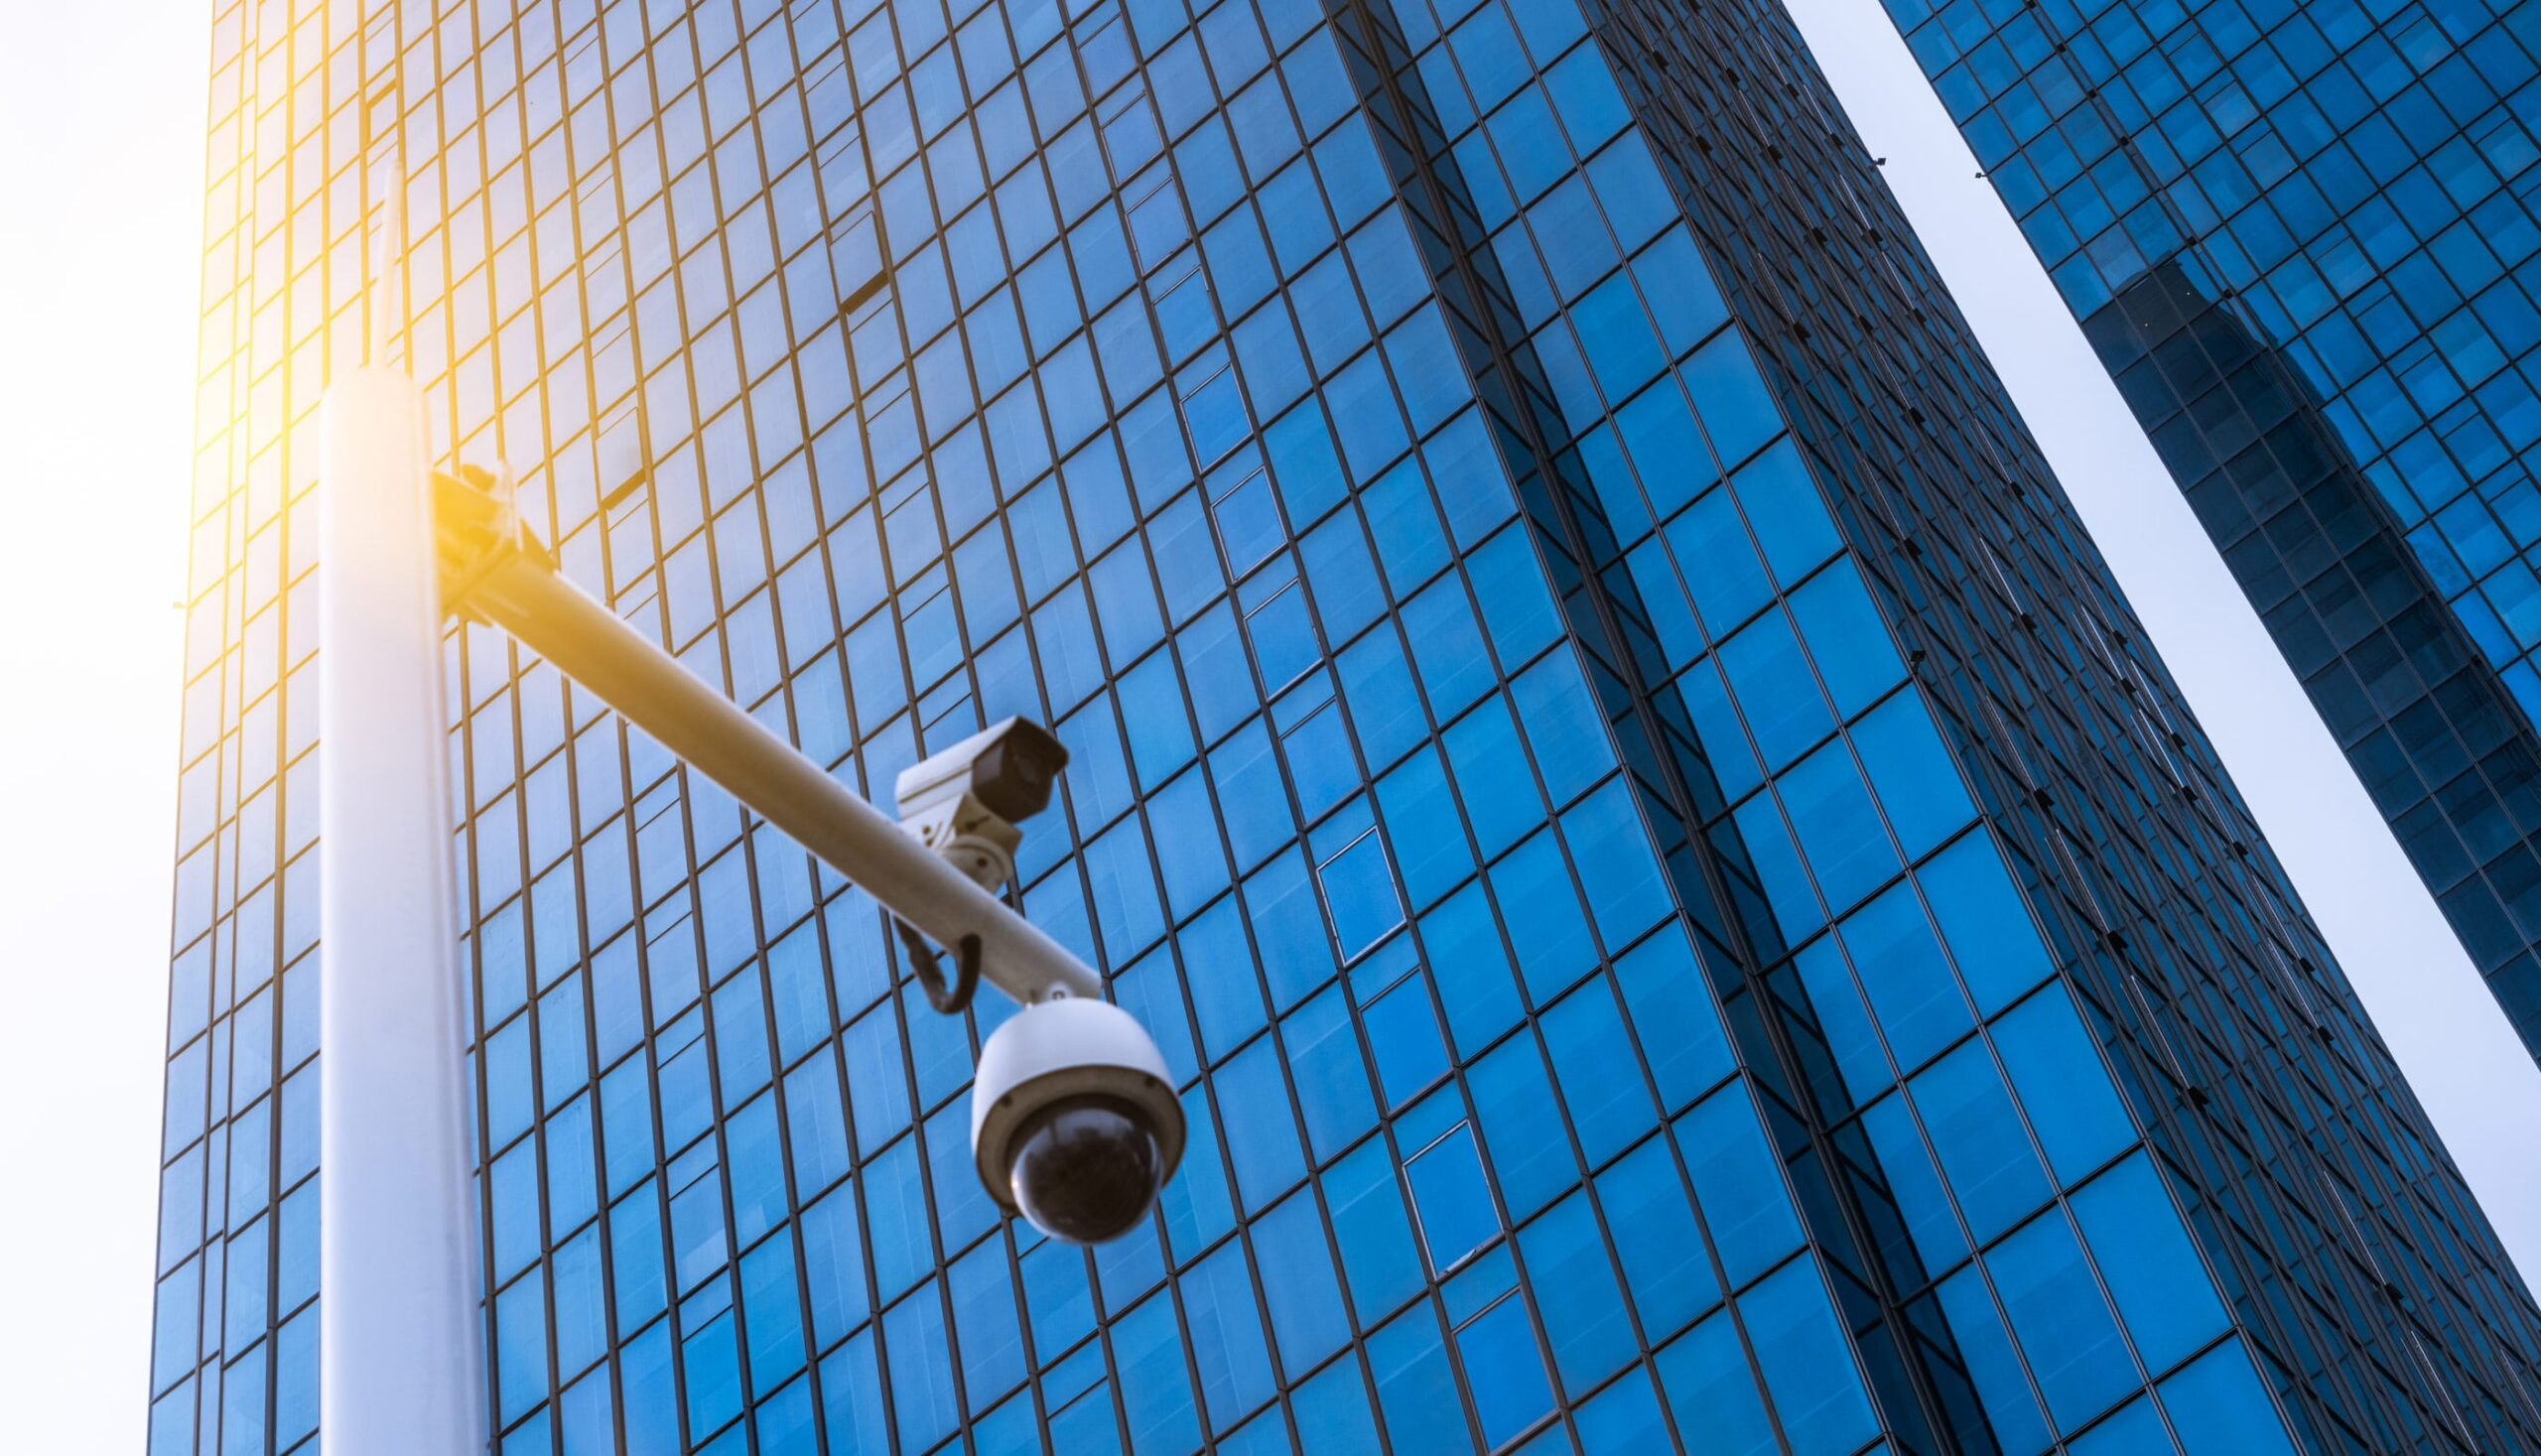 5 Things to Look for in a Surveillance-Optimized Drive